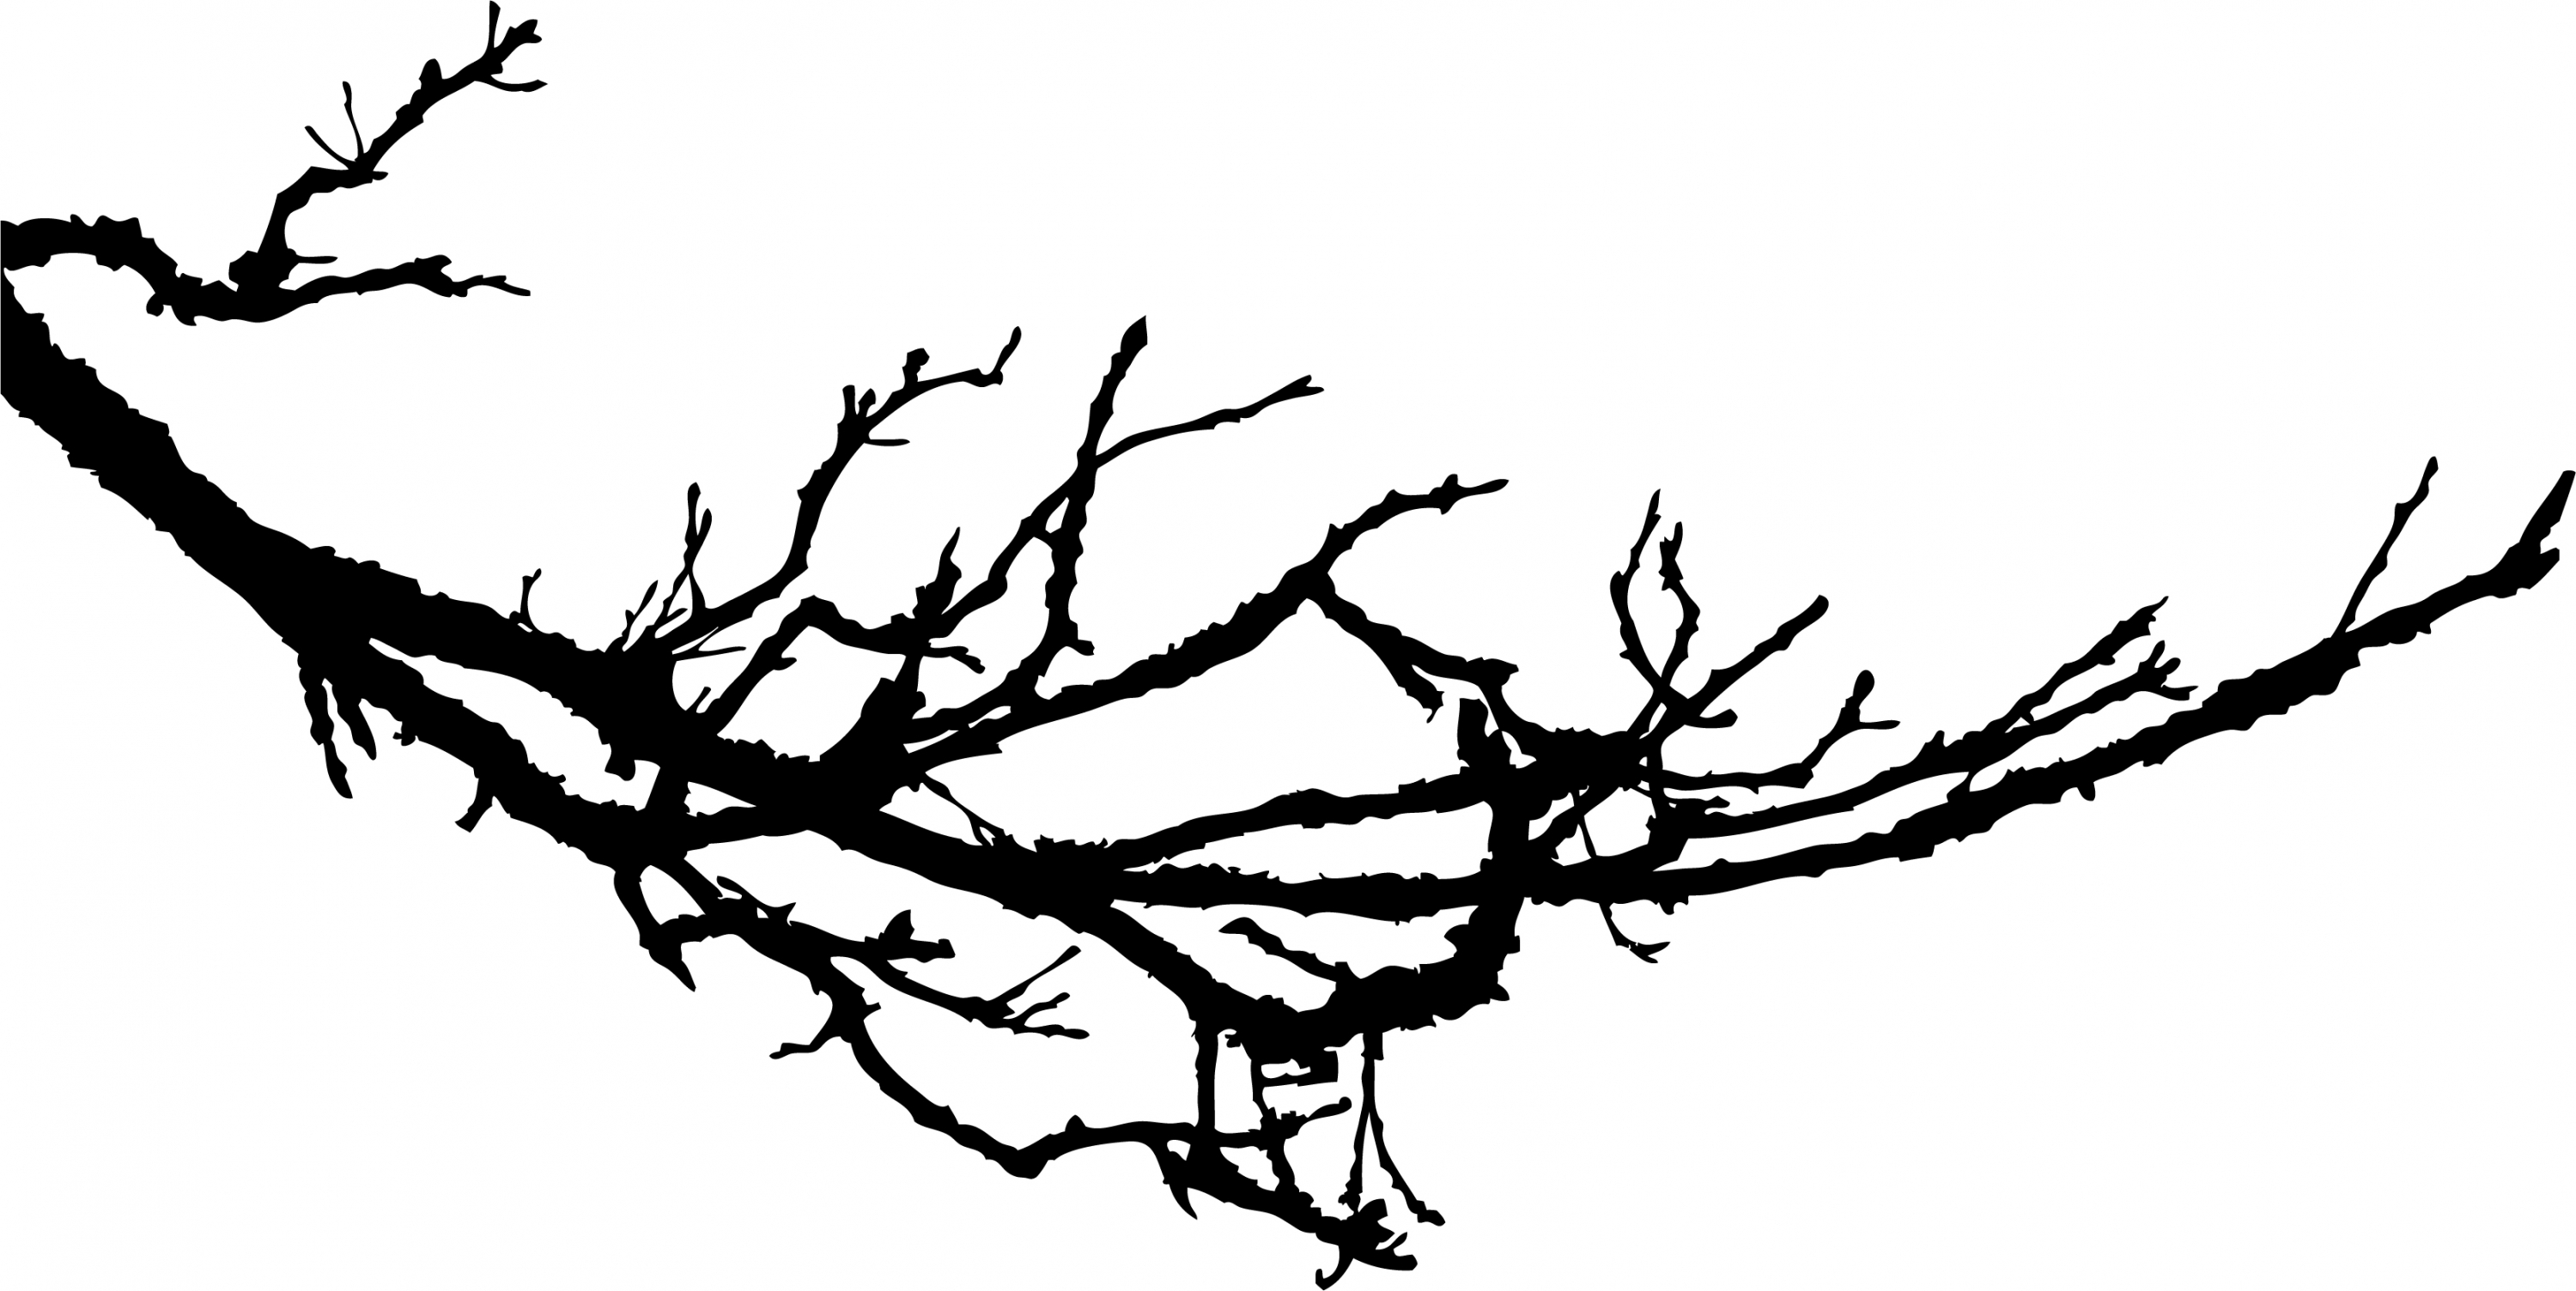 Tree with tree branches clipart picture free stock Tree branch breaking clipart - ClipartFox picture free stock